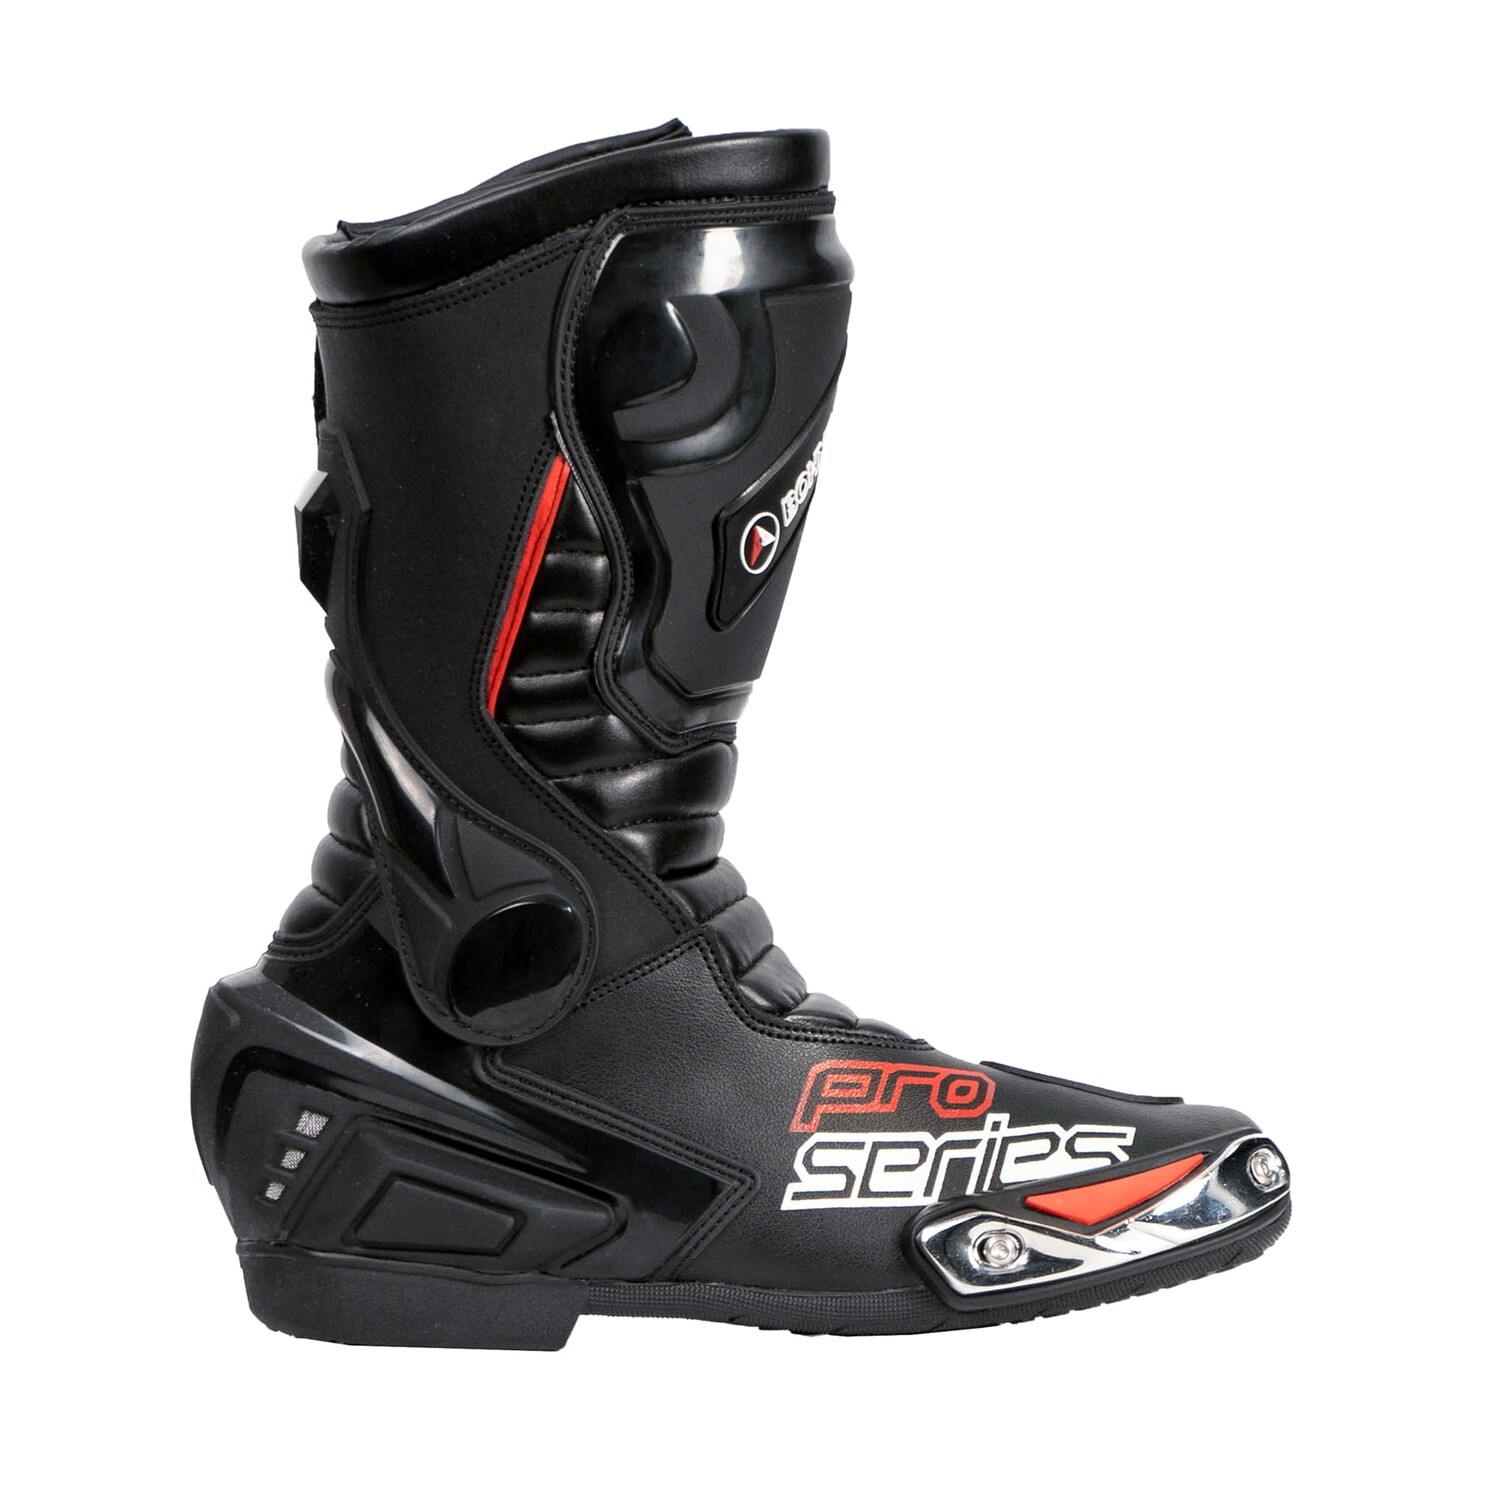 Bohmberg® PRO-series Motorcycle Boots made of sturdy Leather with attached Hard Shell Protectors